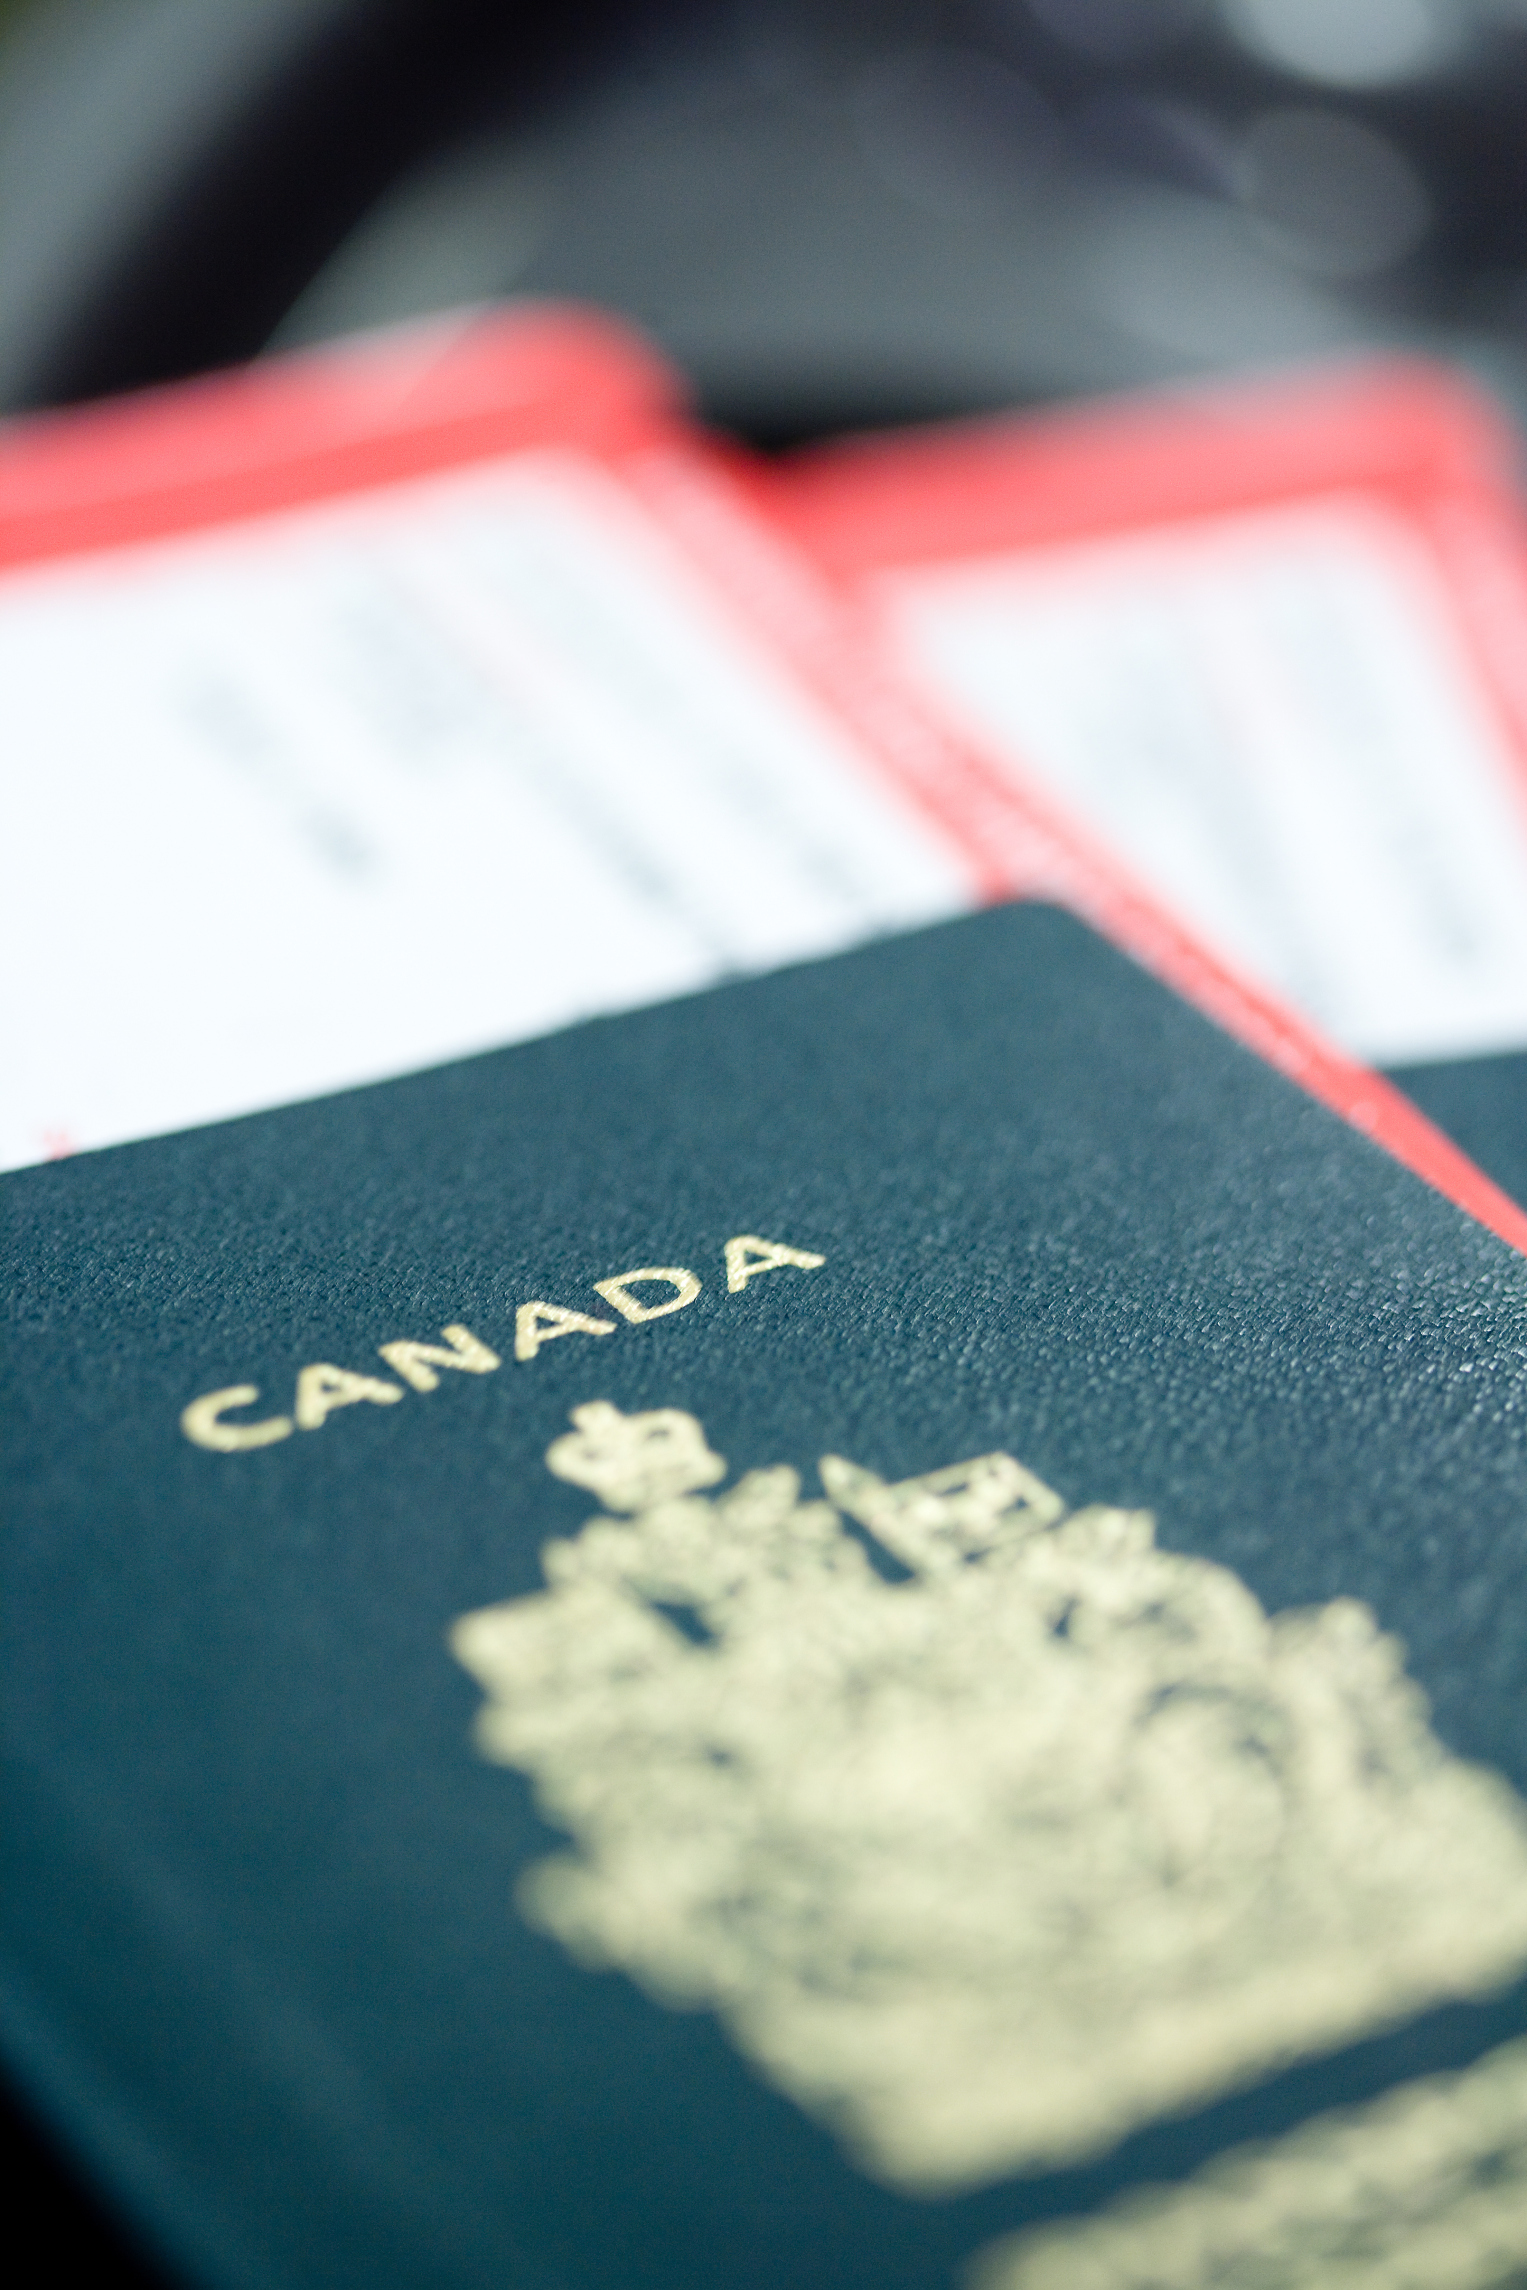 How to get a canadian passport while living in the united states how to get a canadian passport while living in the united states usa today aiddatafo Gallery